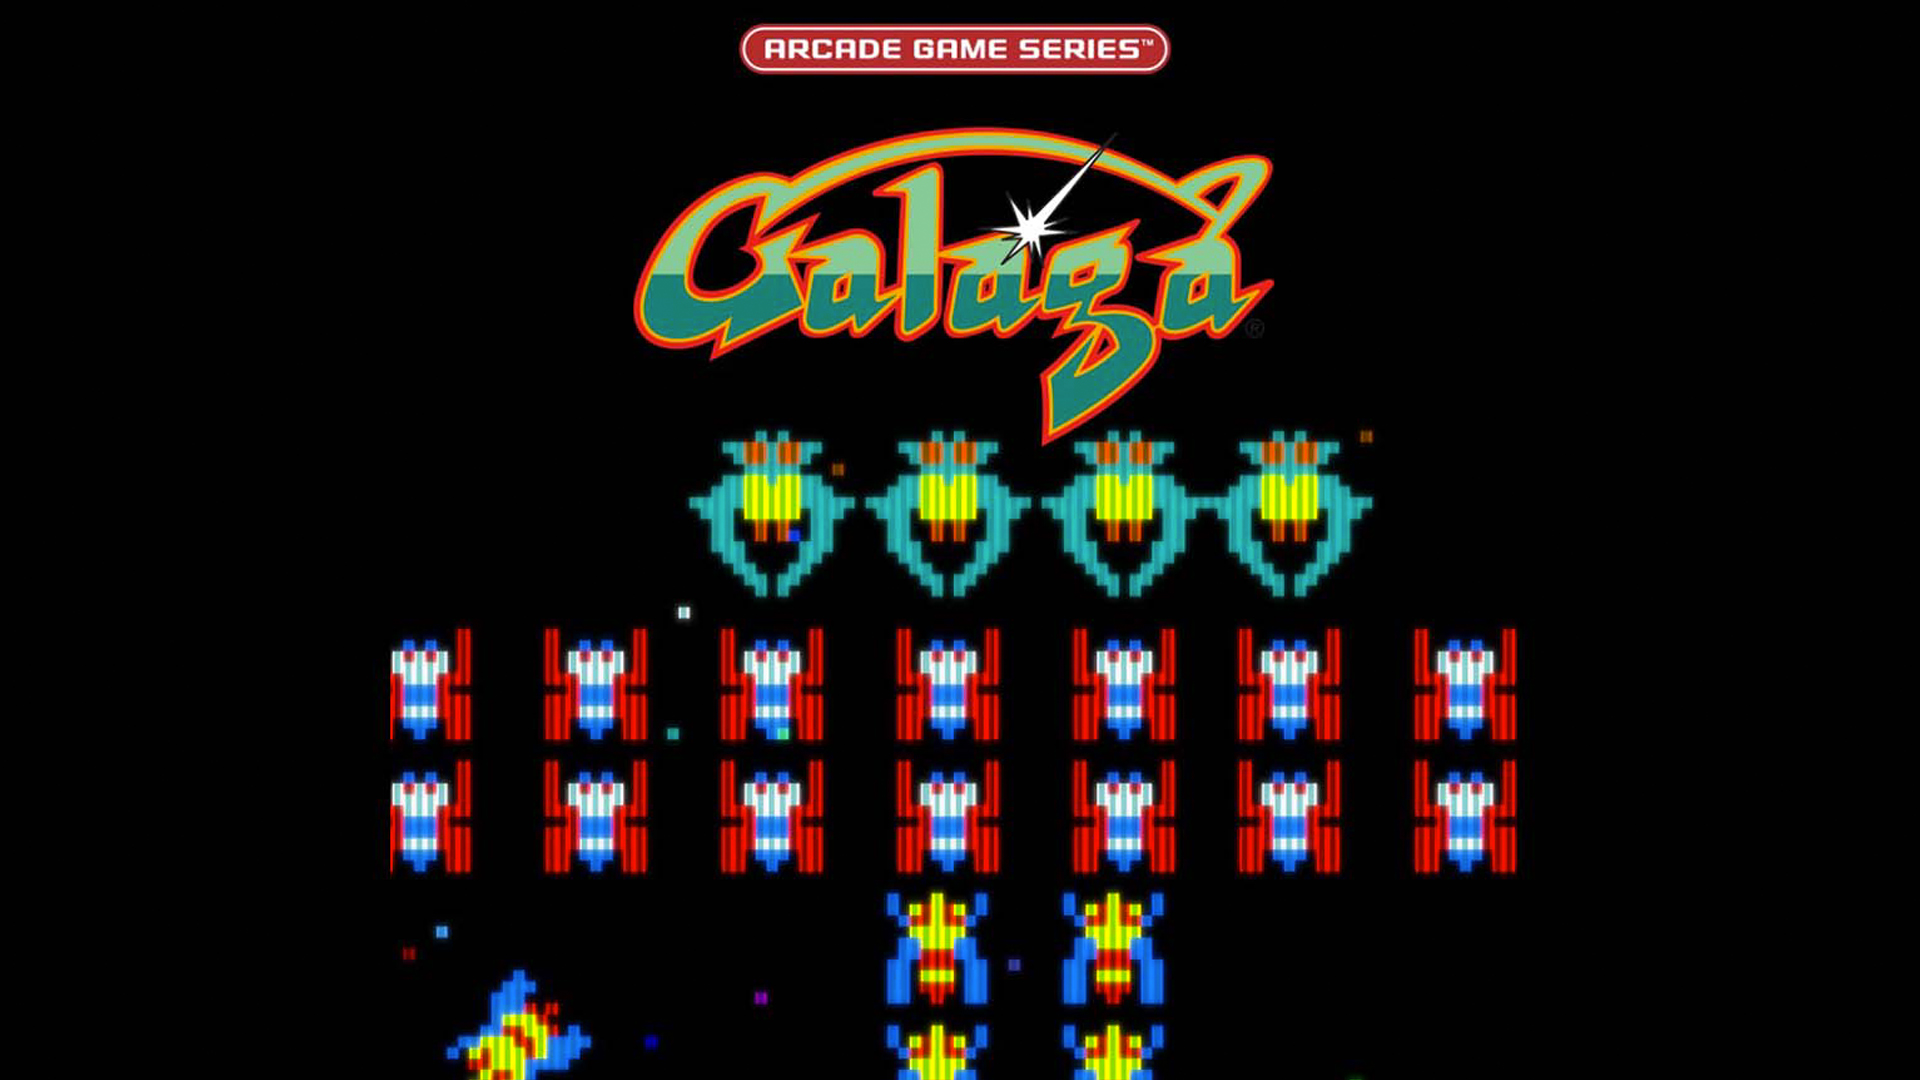 the classic arcade game galaga is being made into animated series